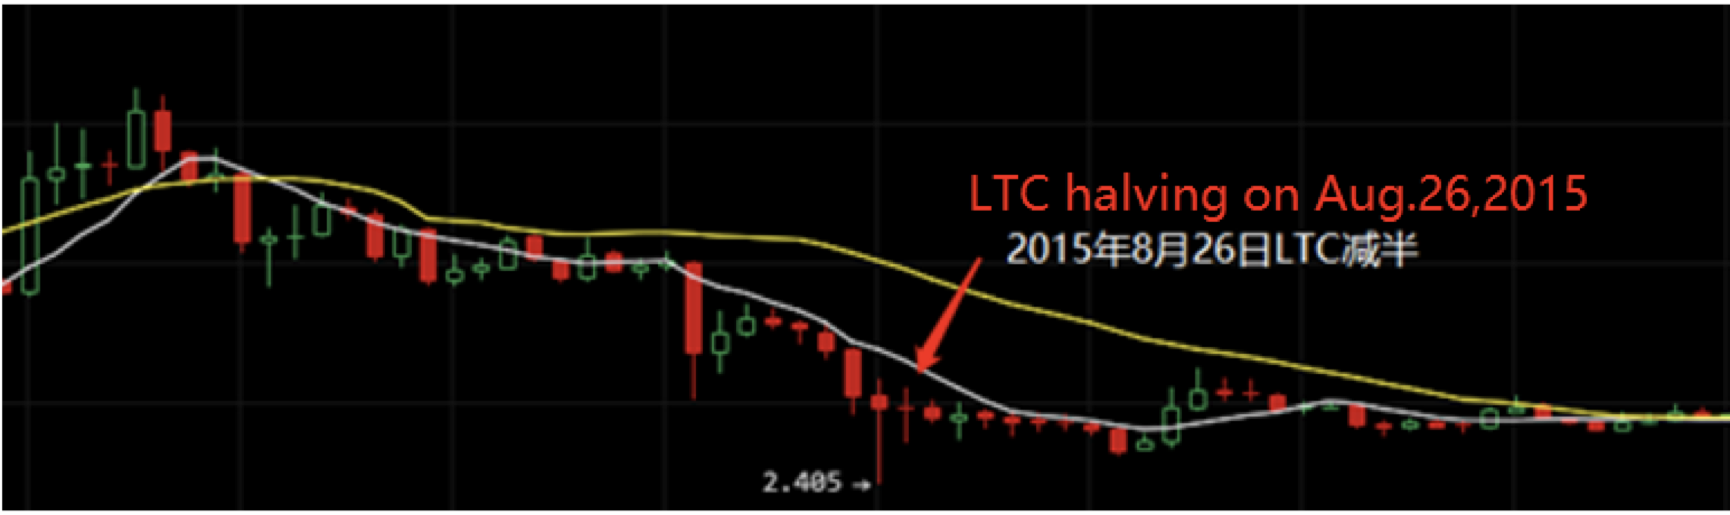 Litecoin (LTC) – The Silver to Bitcoin's Gold | The Daily Hodl